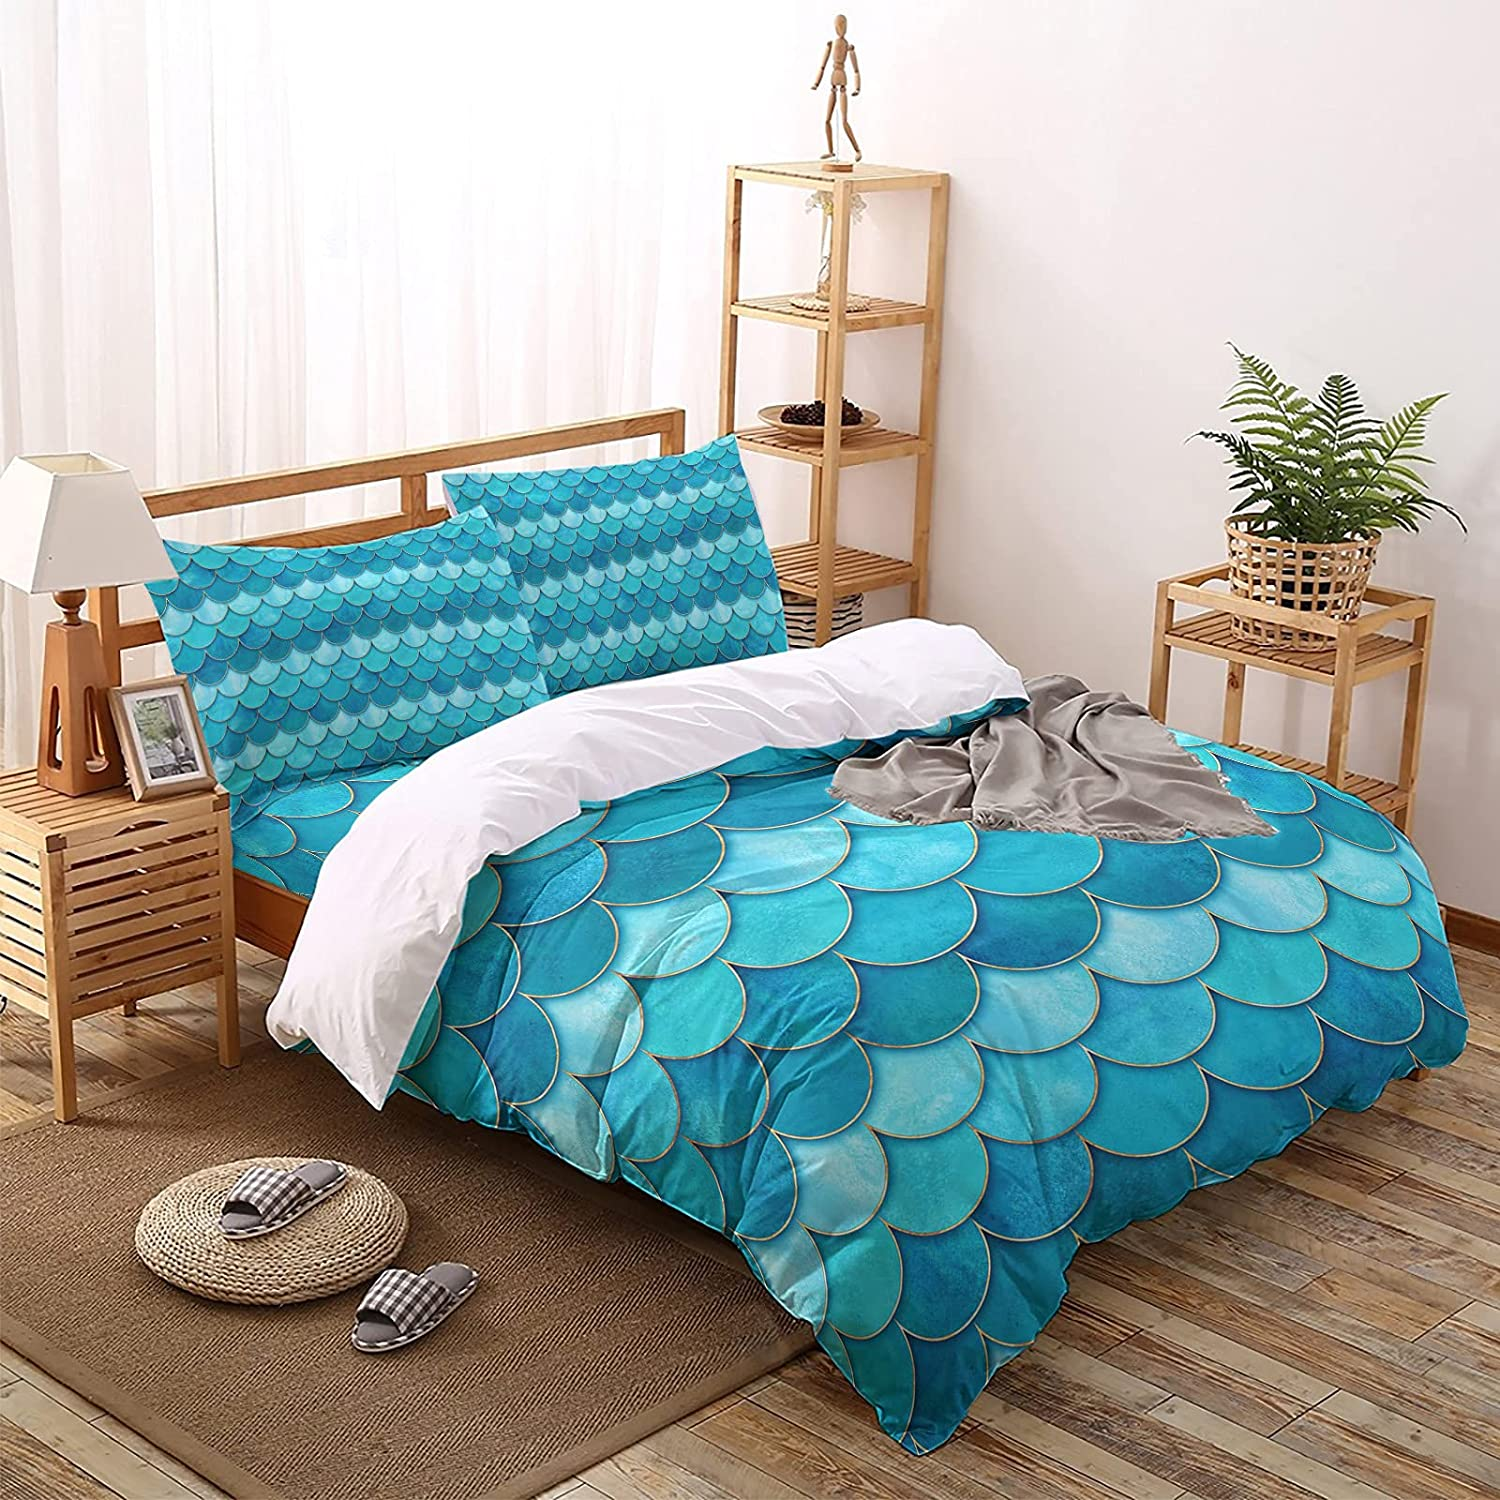 MUSEDAY 4 Pieces Duvet Cover Bedding Ocean Water Ranking TOP2 Gree Set Summer At the price